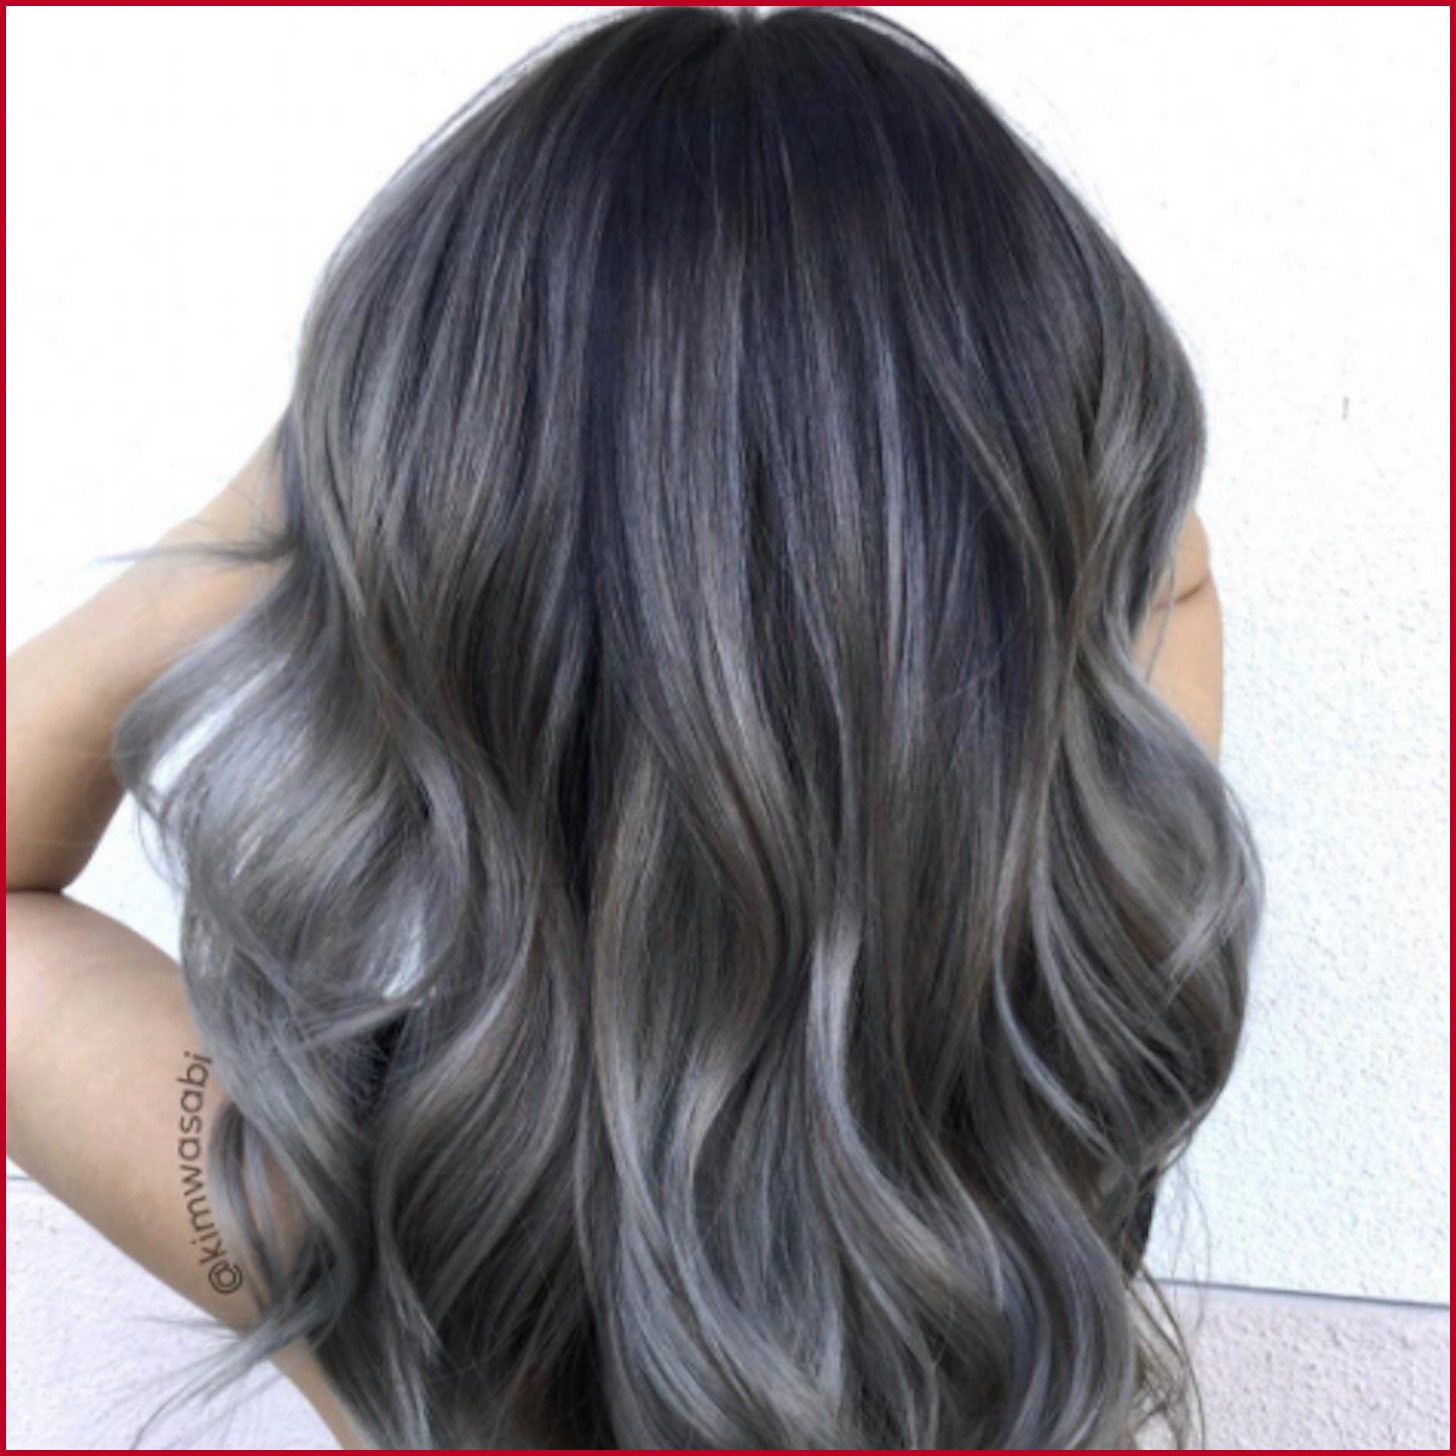 Try easy black and gray hair color charcoal hair color using